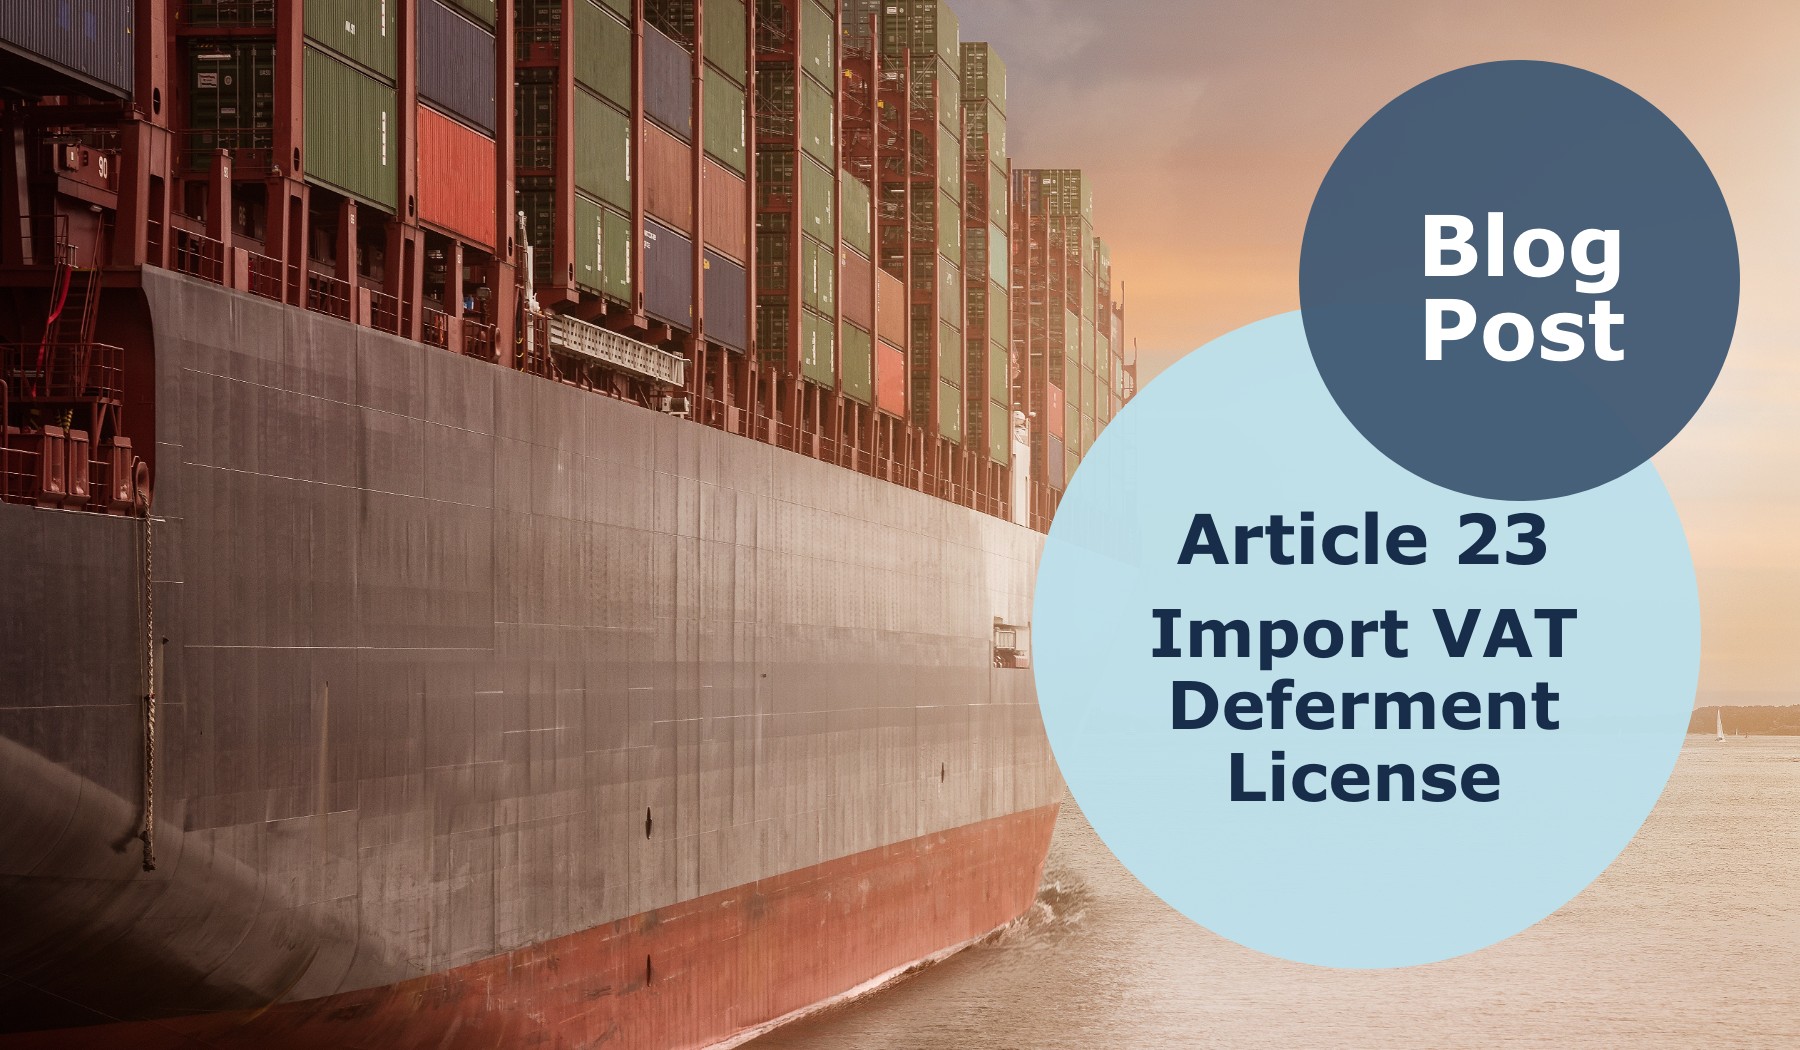 Article 23, Import VAT Deferment